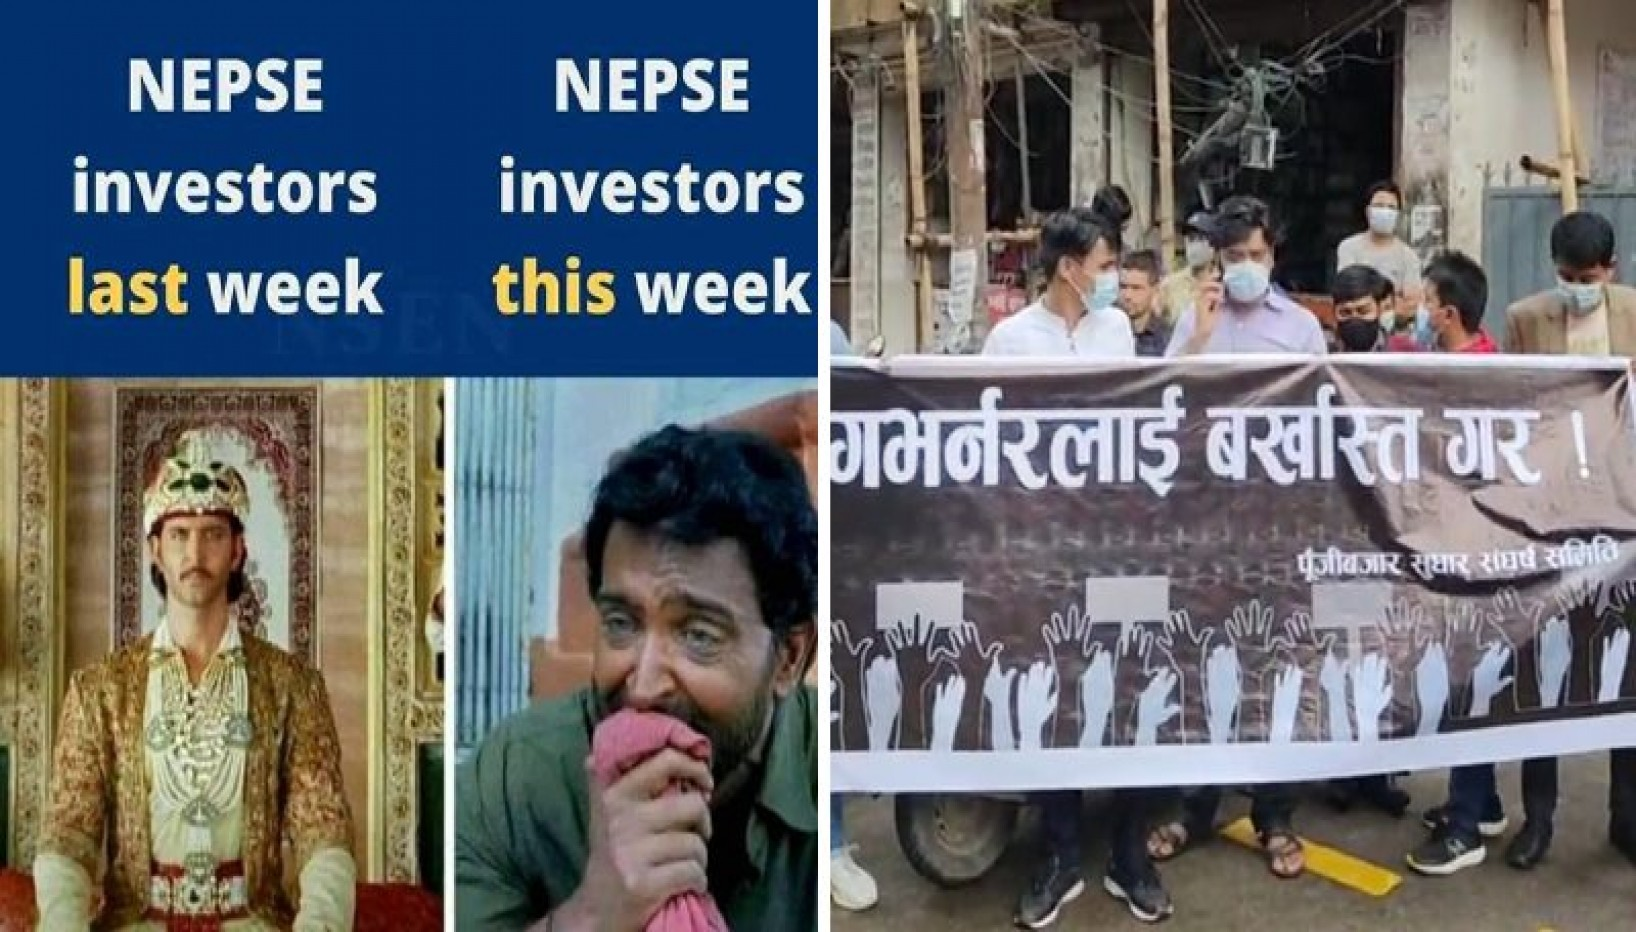 The NEPSE Index Had A Massive Freefall Followed By A Miraculous Recovery. Nepalis Are Coping With Memes